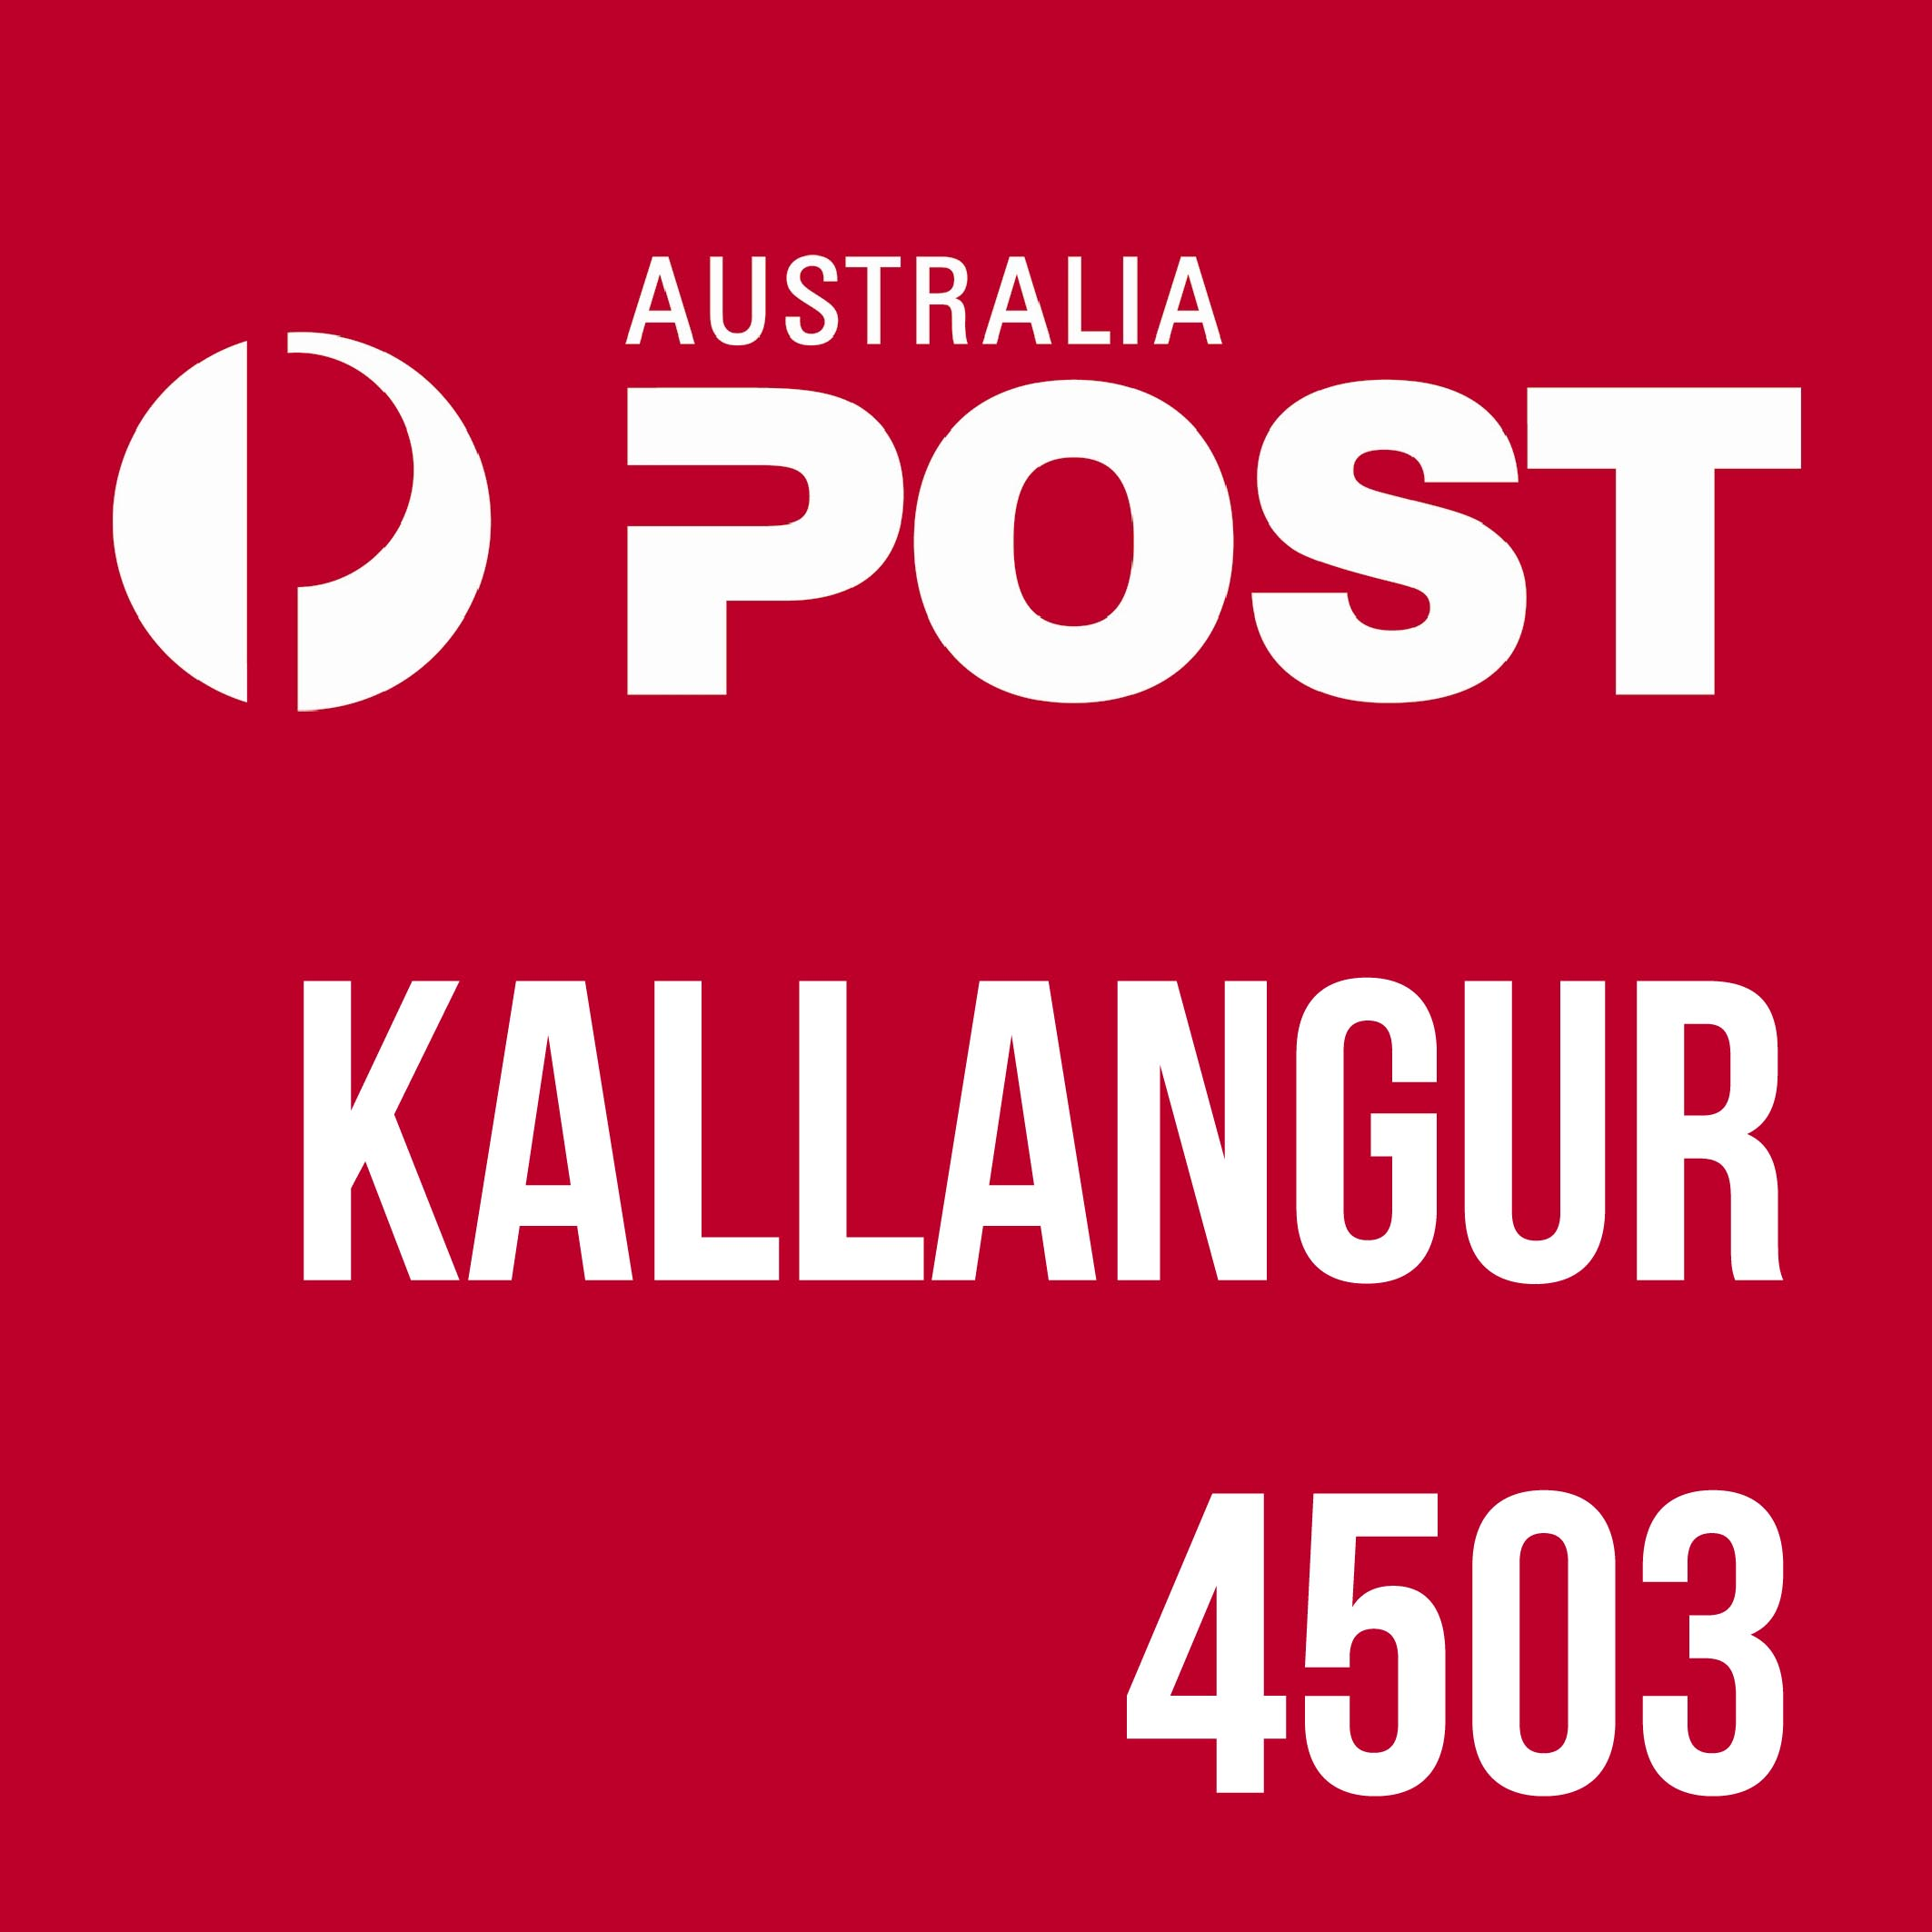 Australia Post Kallangur 4503